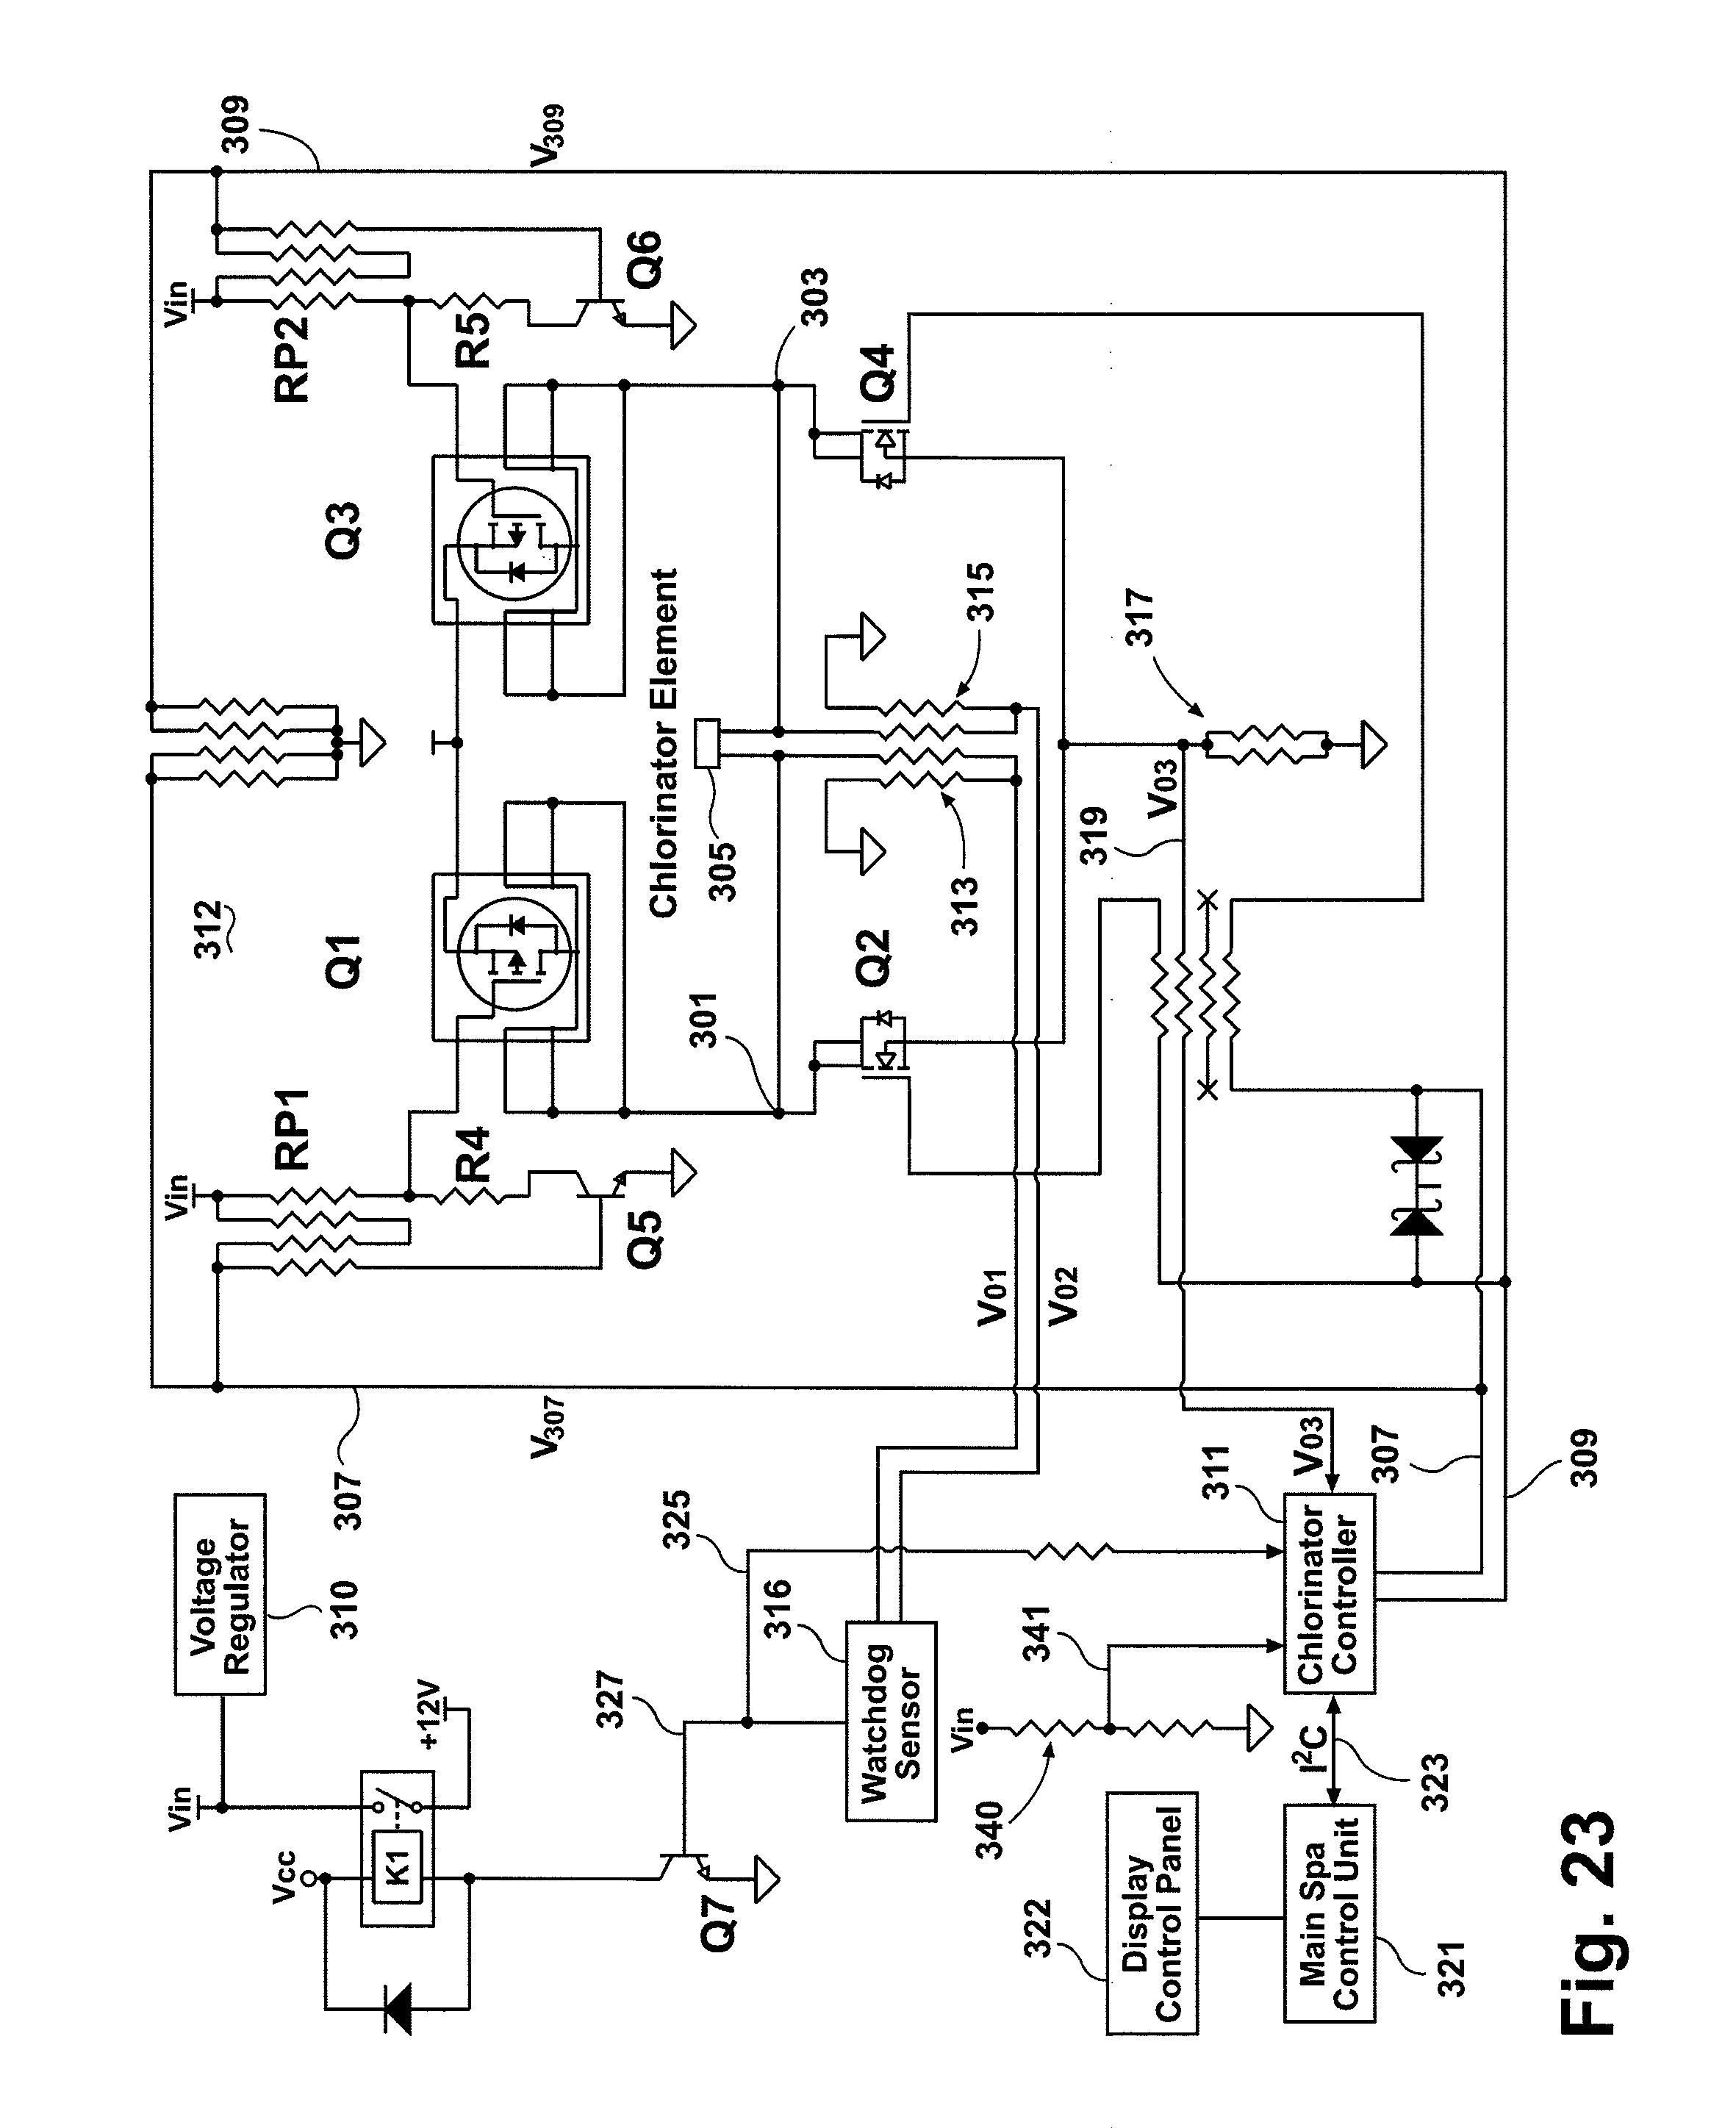 Balboa Wiring Diagram Rs 100 likewise Flotec Wiring Diagram furthermore US8273254 likewise 30   Circuit Breaker Wiring Diagram as well Waterway Spa Jet Replacement Parts. on jacuzzi wiring diagram